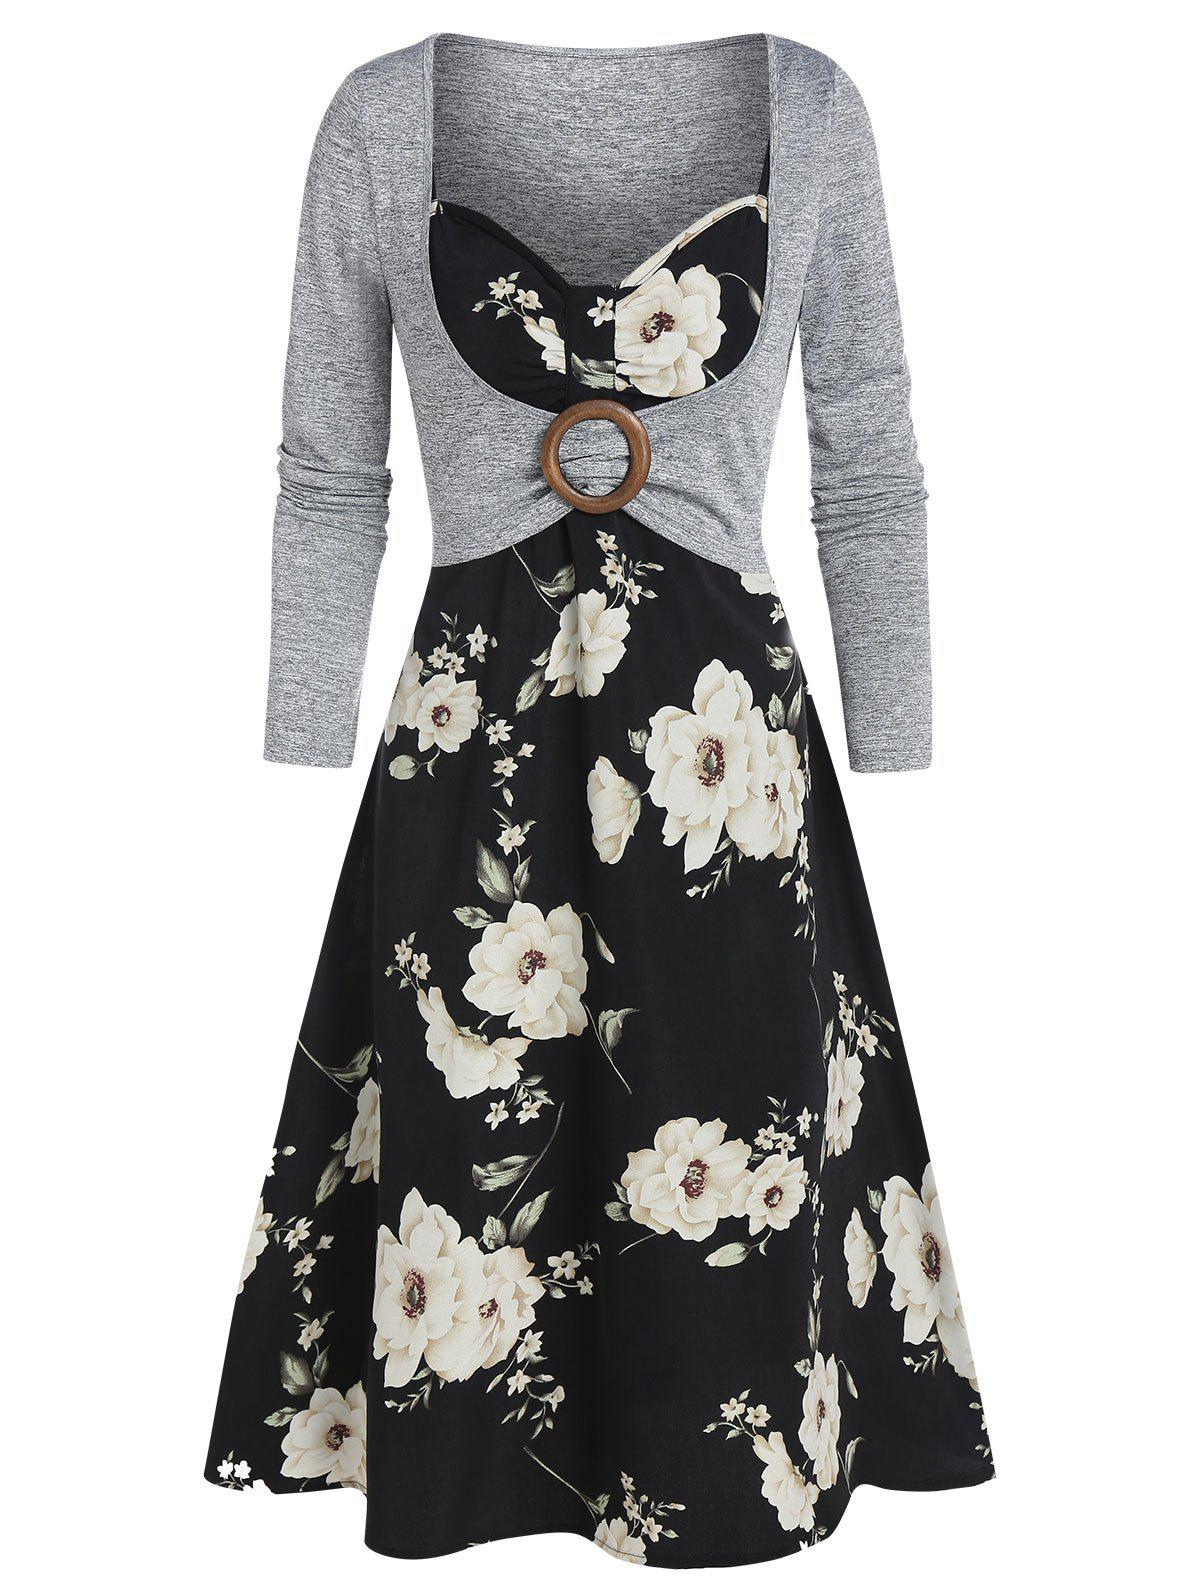 Floral Print O-ring Long Sleeve Two Piece Dress - multicolor B M